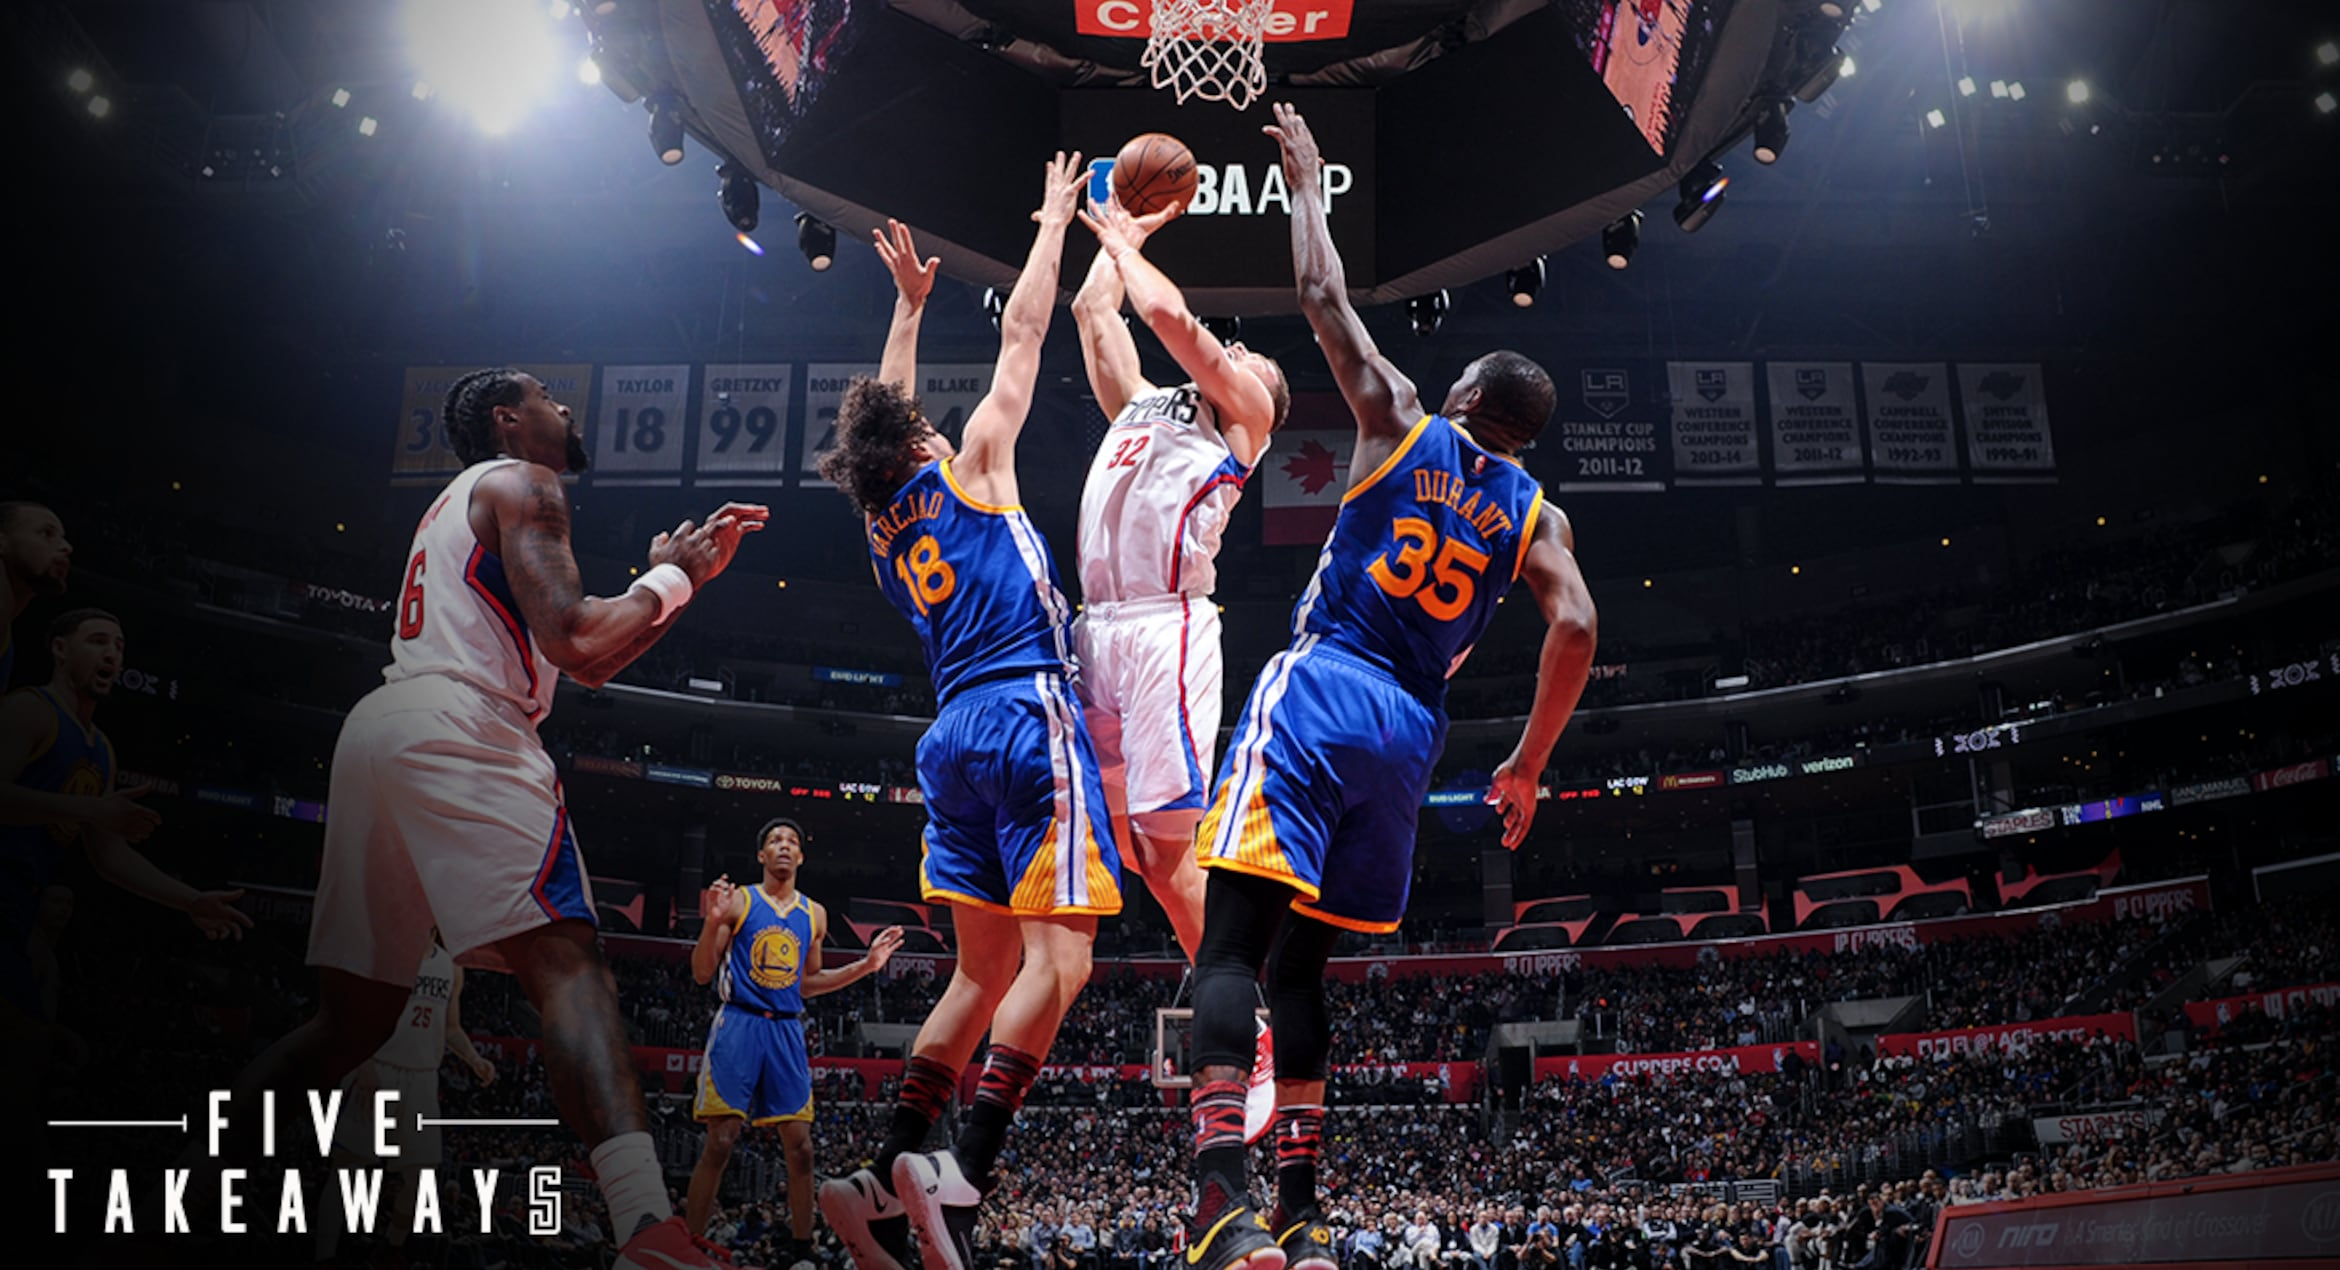 Five Takeaways: Late Run Not Enough As Clippers Fall To Warriors